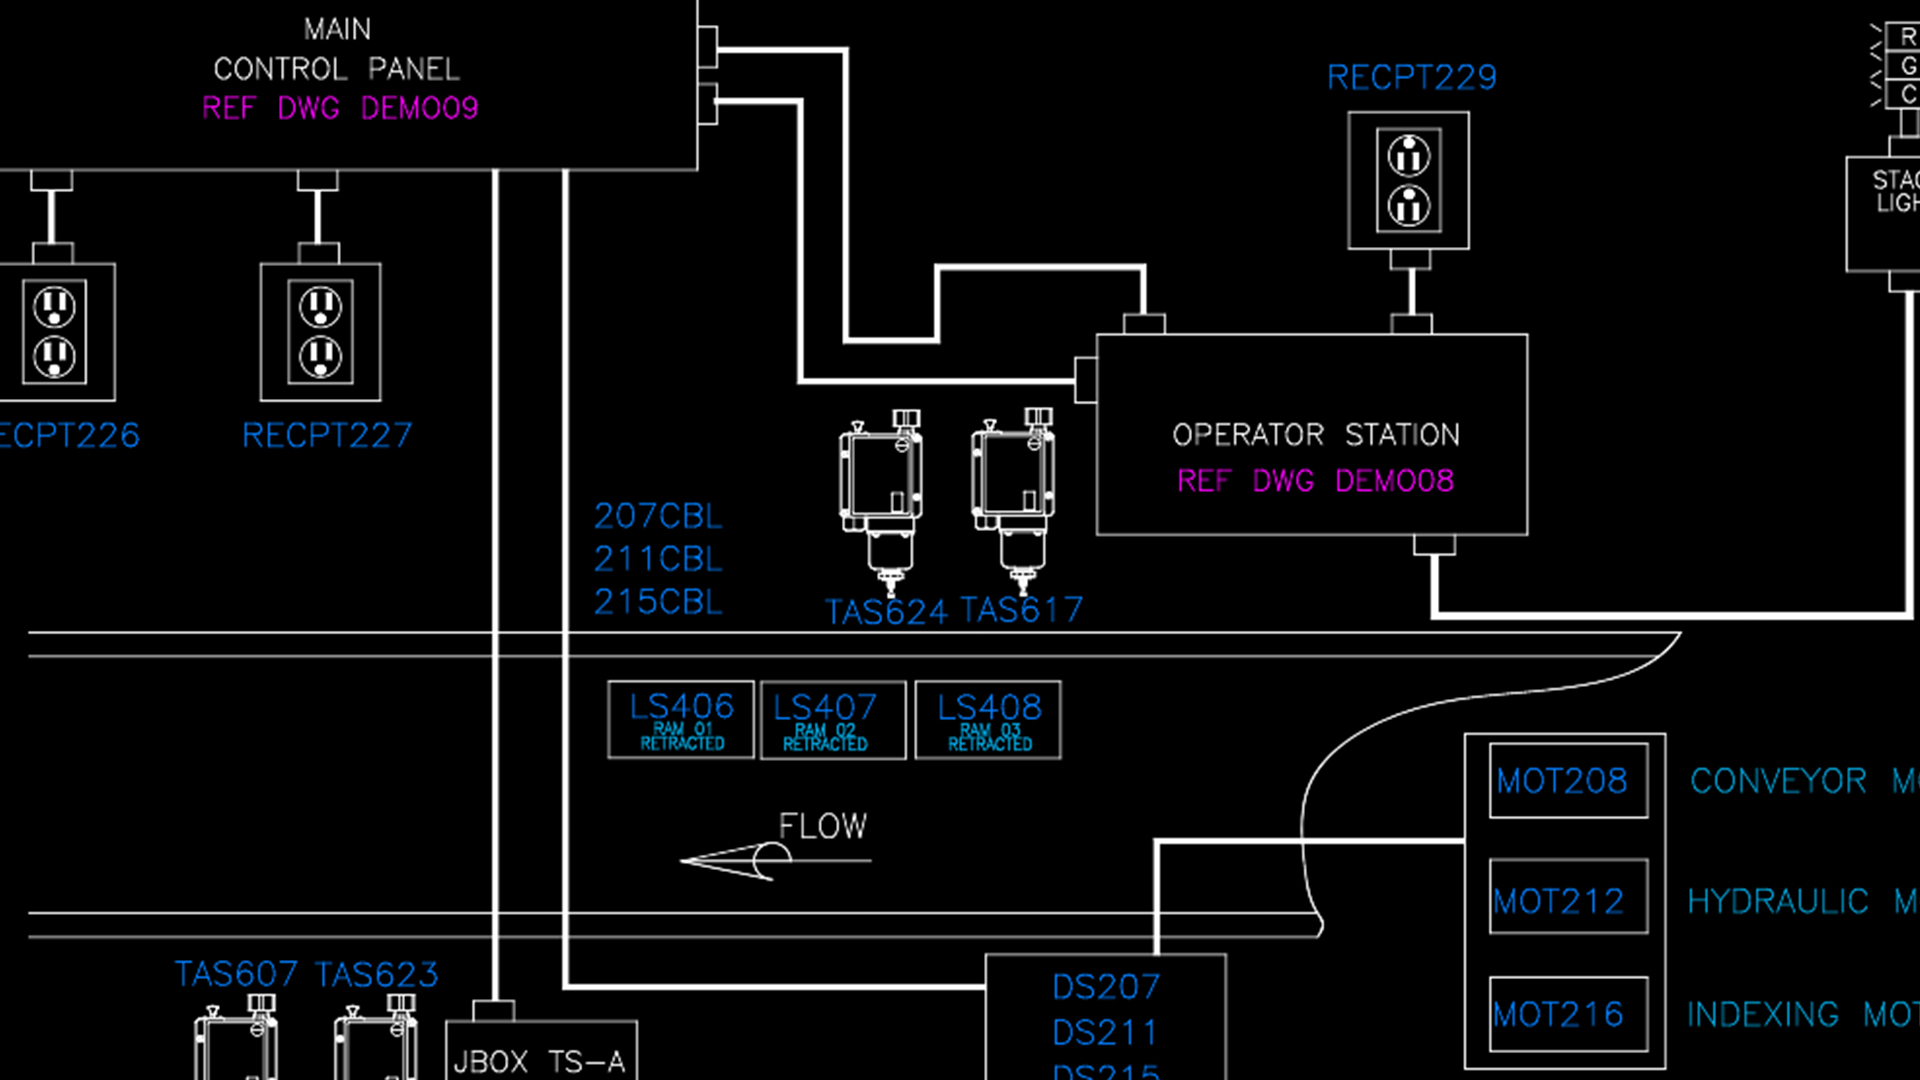 AutoCAD Electrical: Implementing PLCs